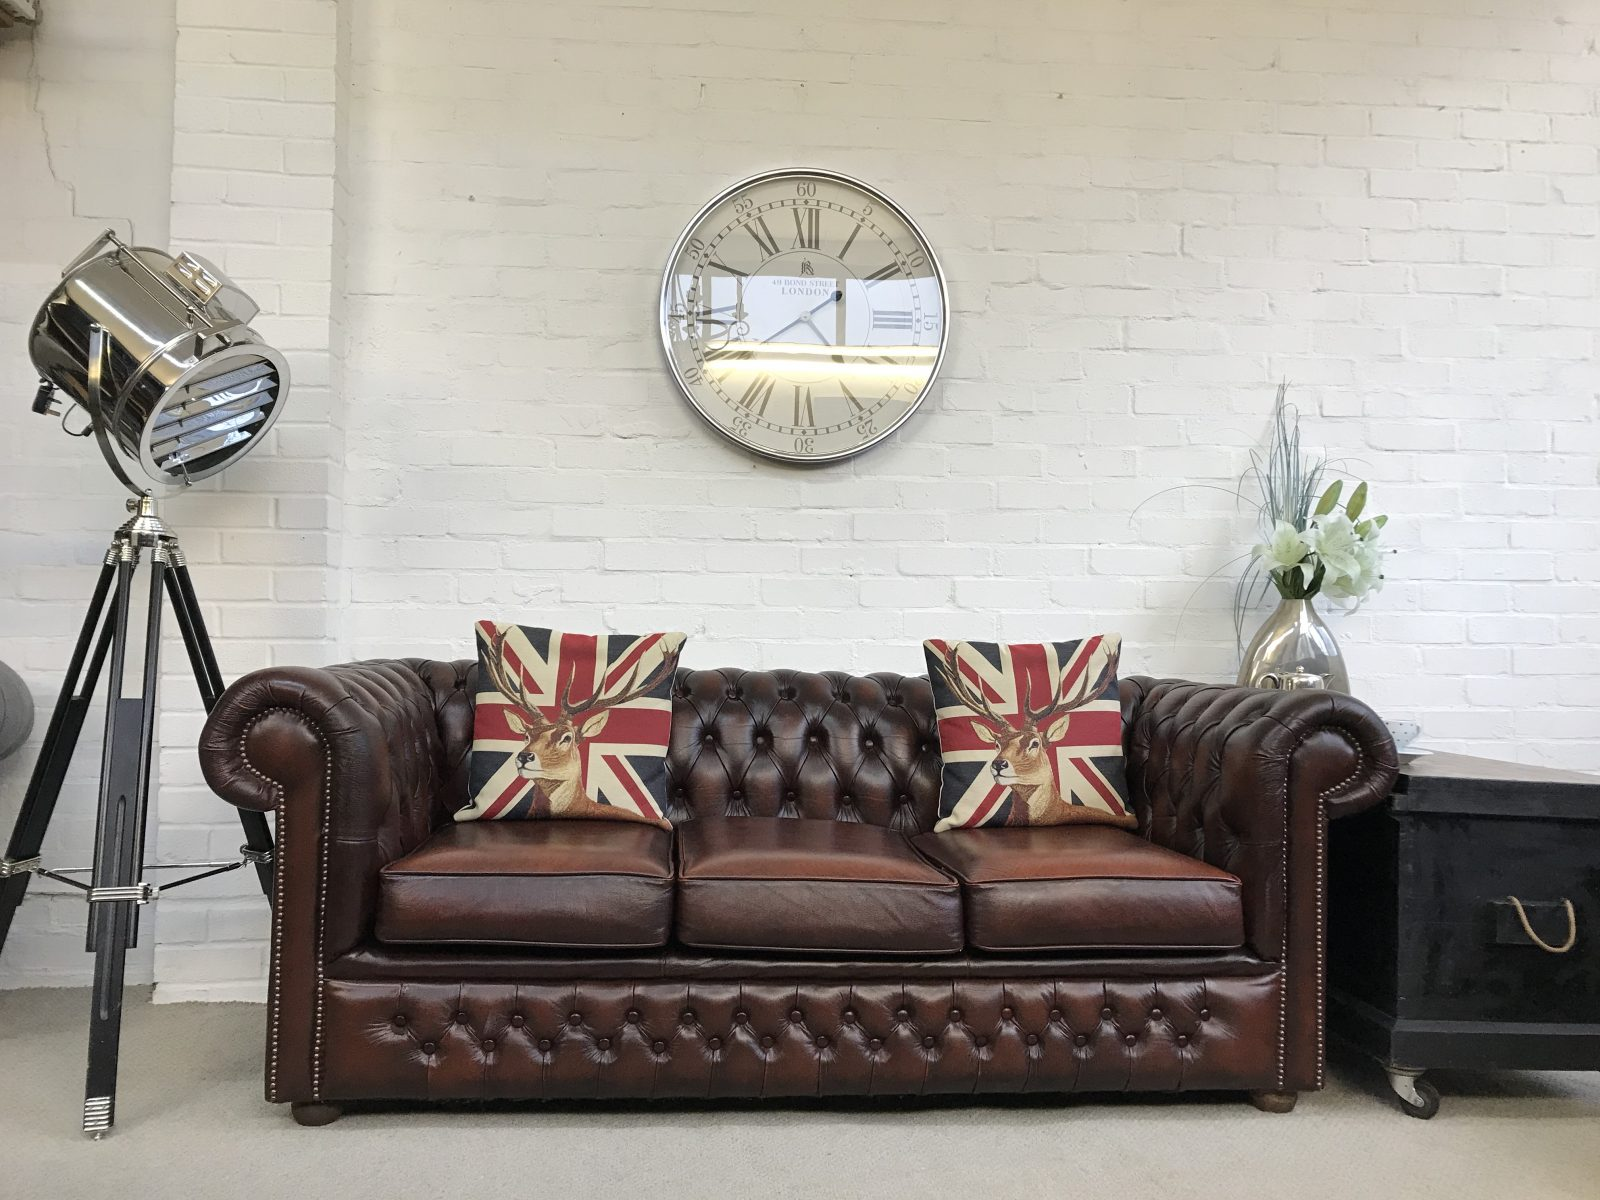 Rustic Brown Chesterfield Sofa.